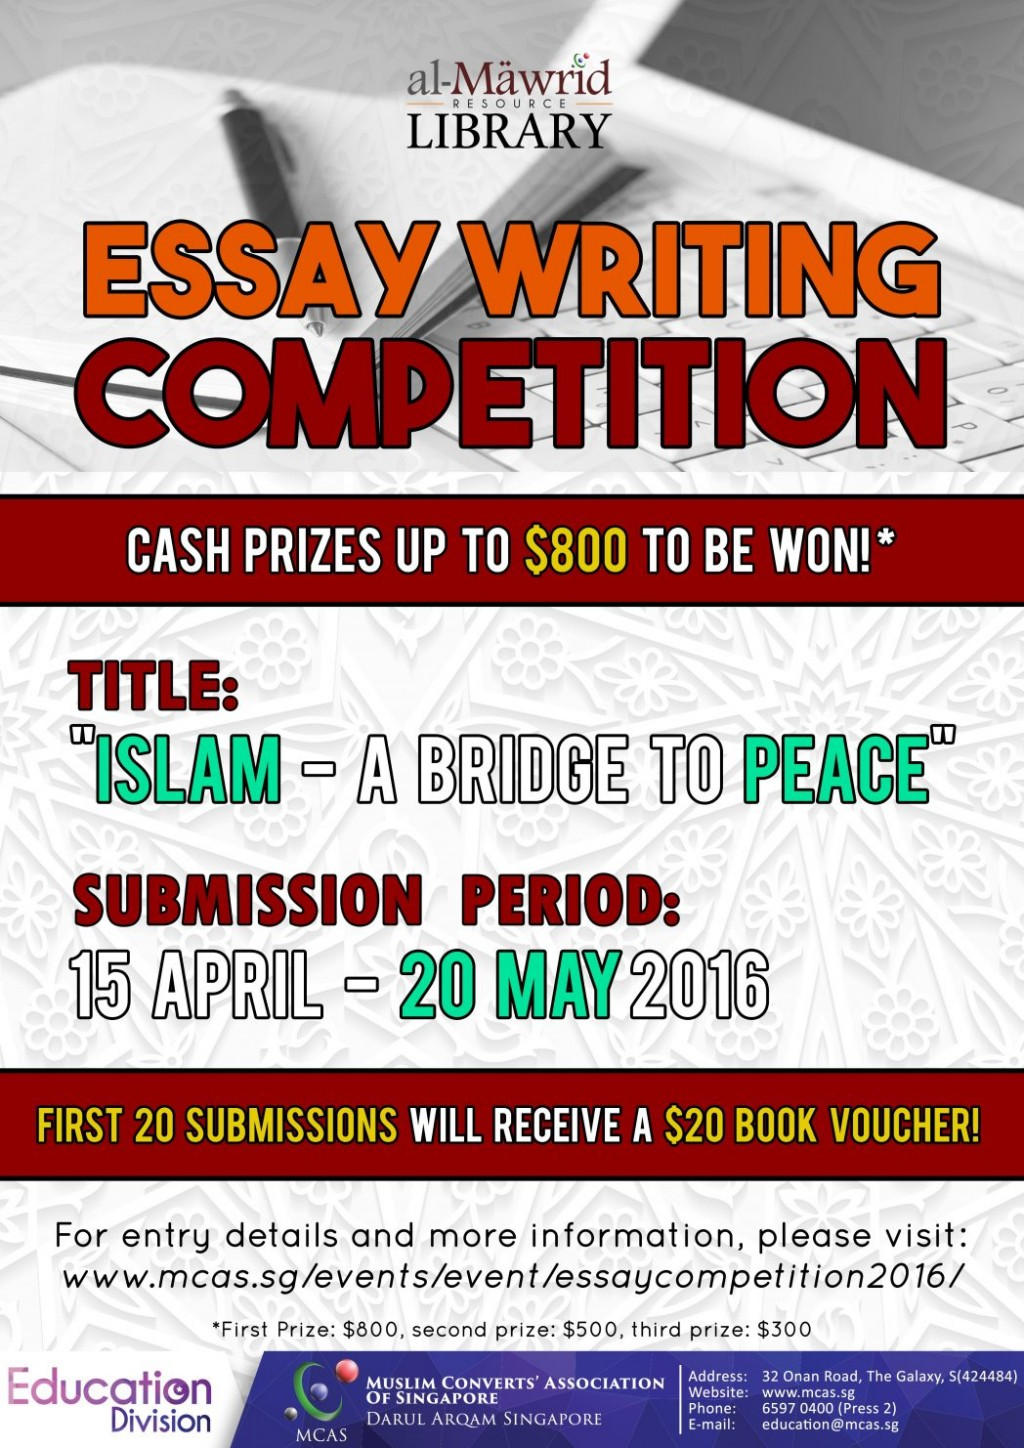 024 Buysay Com Ua Close Up Front Rank Firm In Australia To Writing Contest Criteria Version 2 Competition New Philippines Rubrics Mechanics Guidelines Tips For Nutrition 1048x1482 Incredible Essay International Competitions High School Students Rules By Essayhub Large